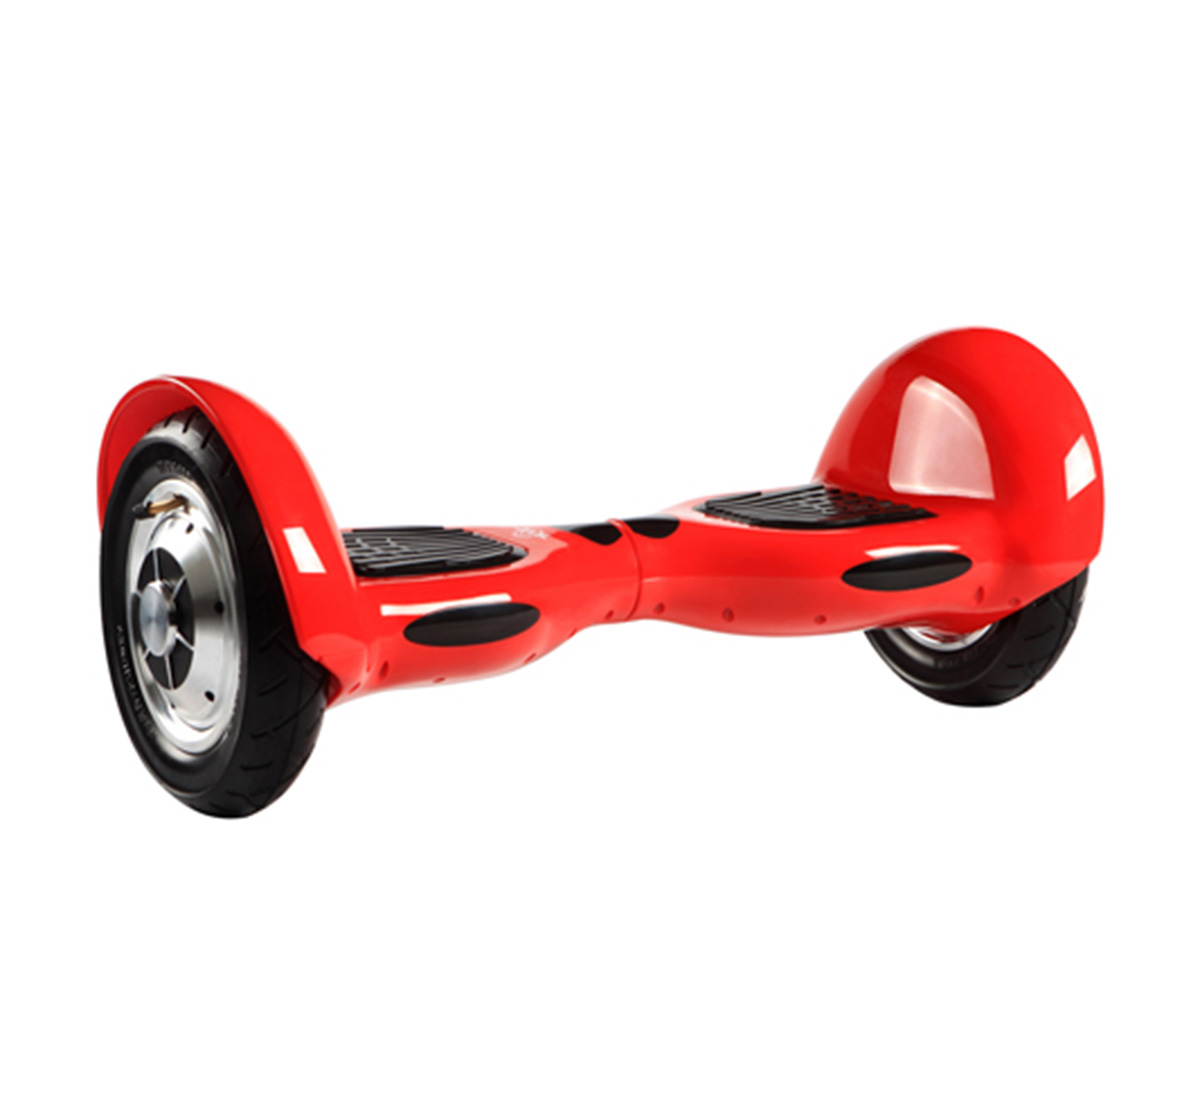 Megawheels | Megawheels Hoverboard 10 Inches Red